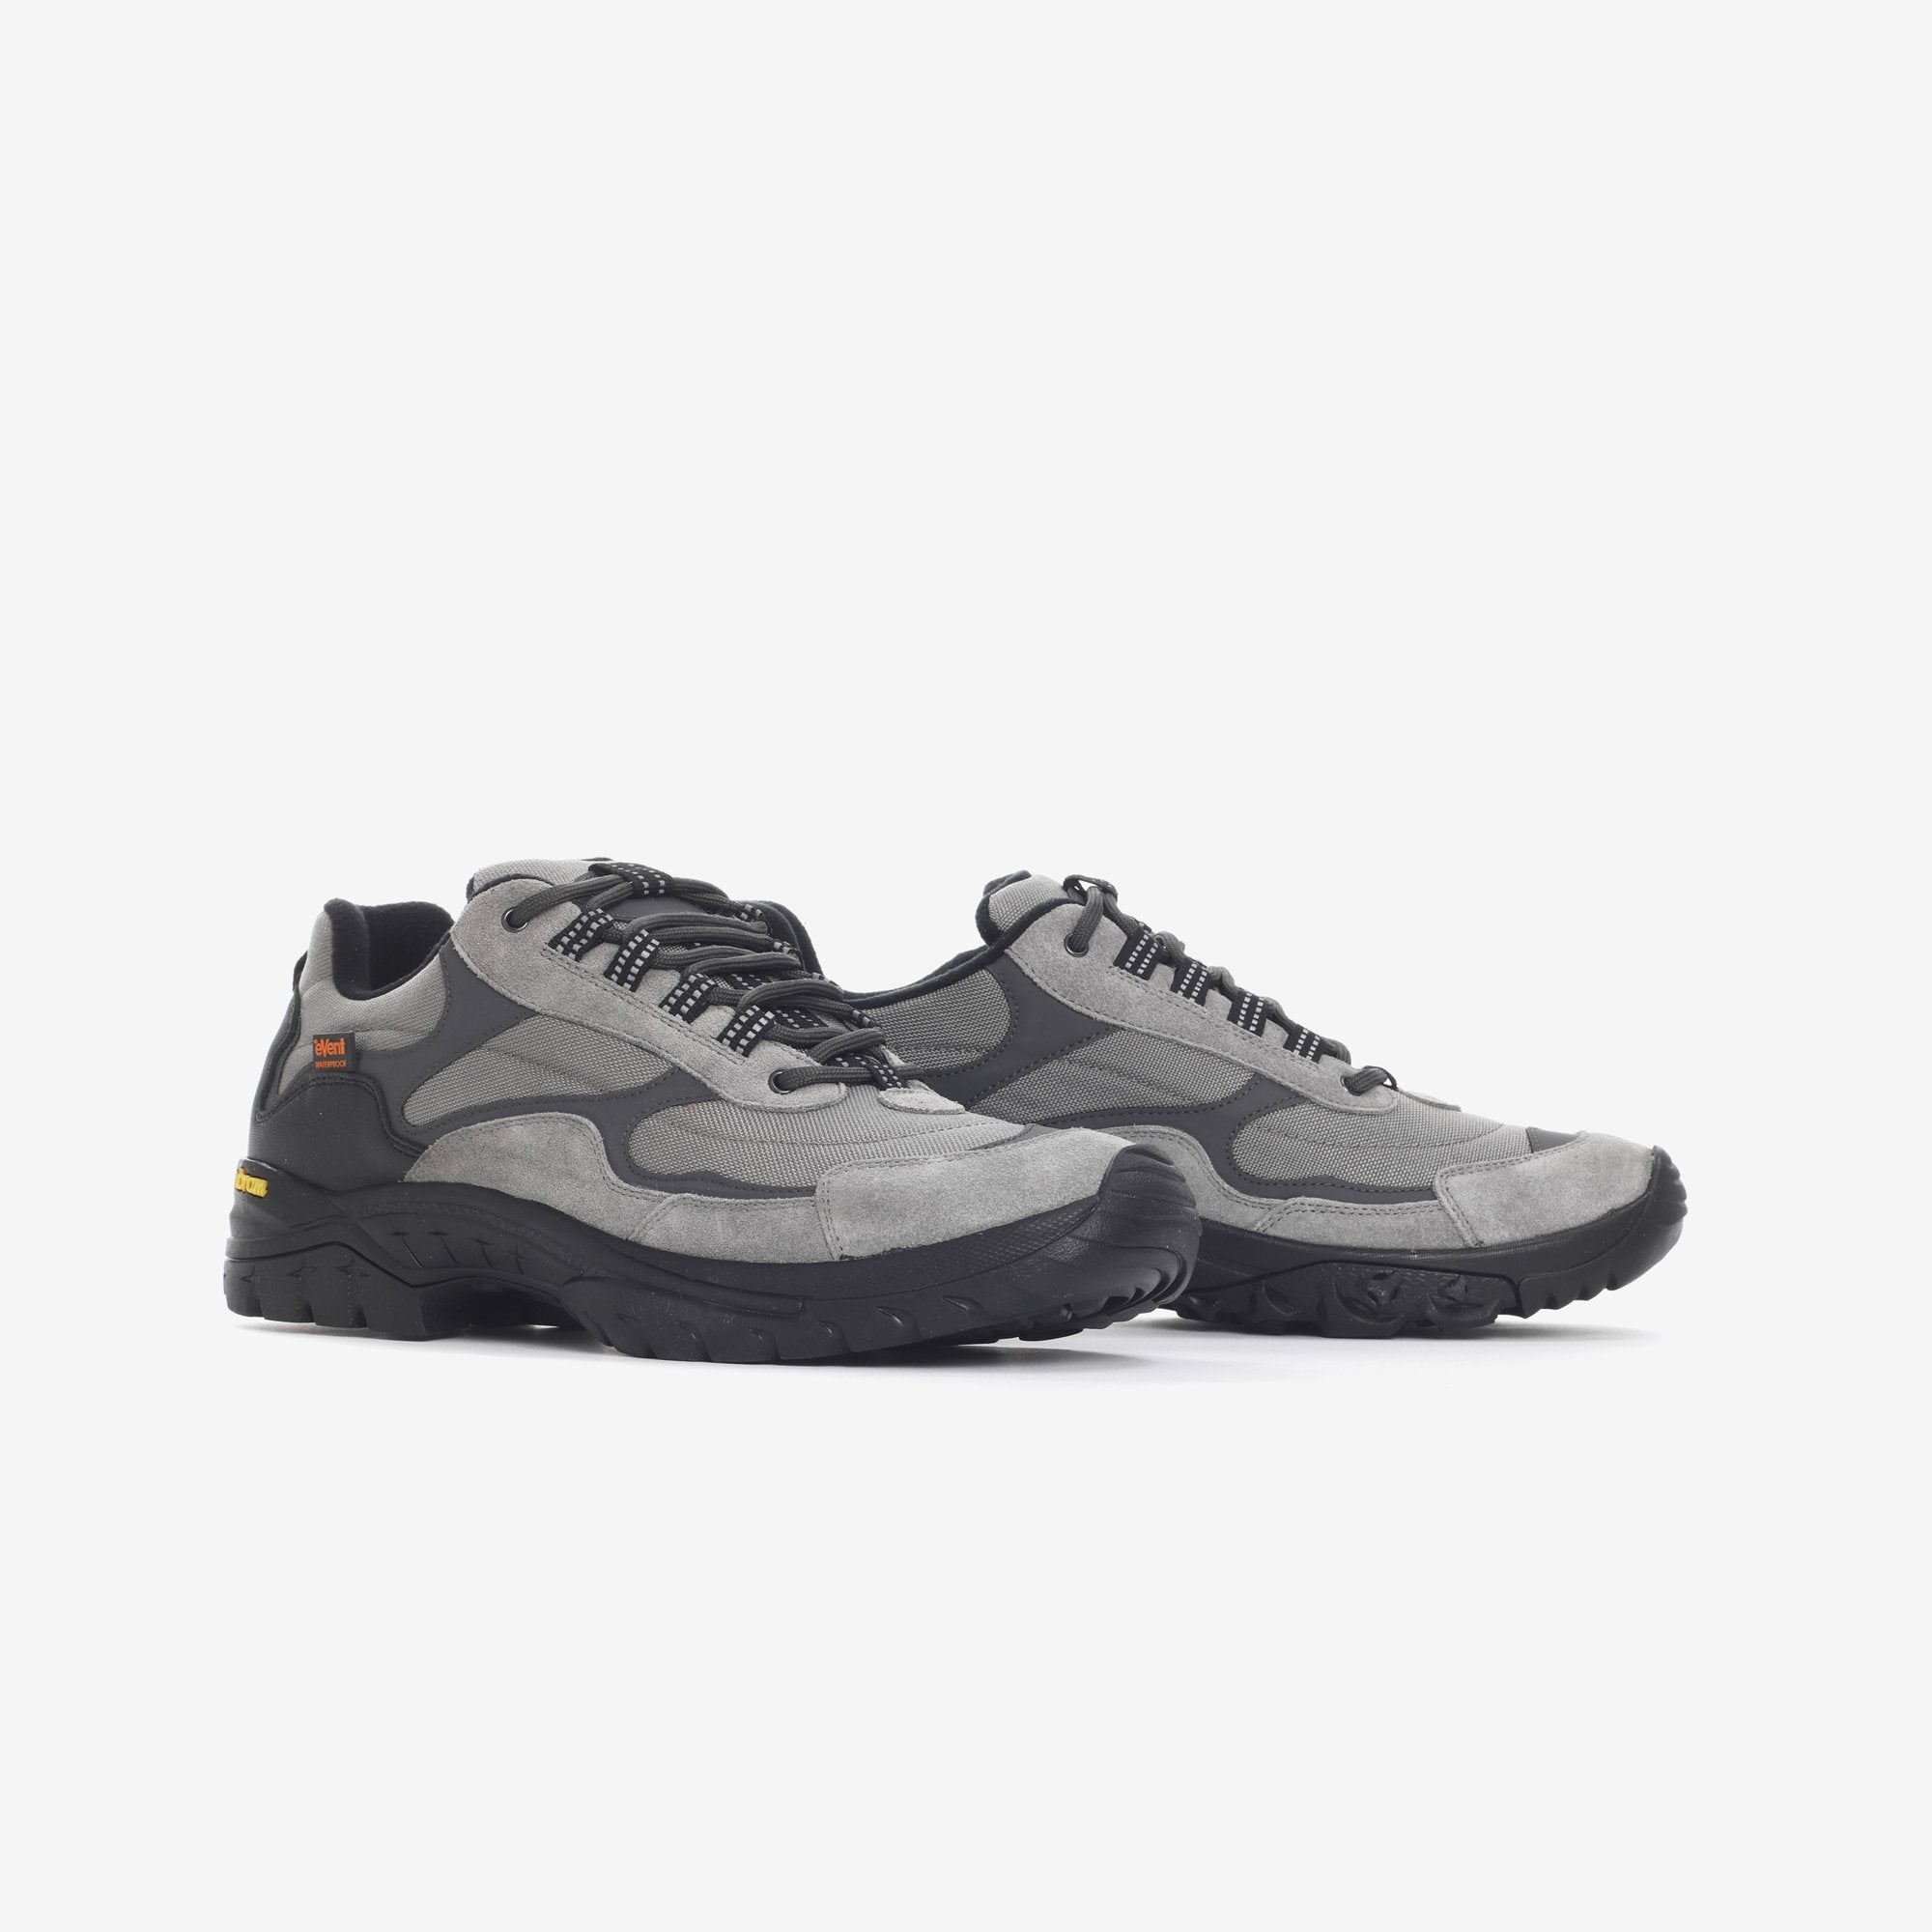 rof-french-tactical-grey-charcoal-202-SS-1.jpg